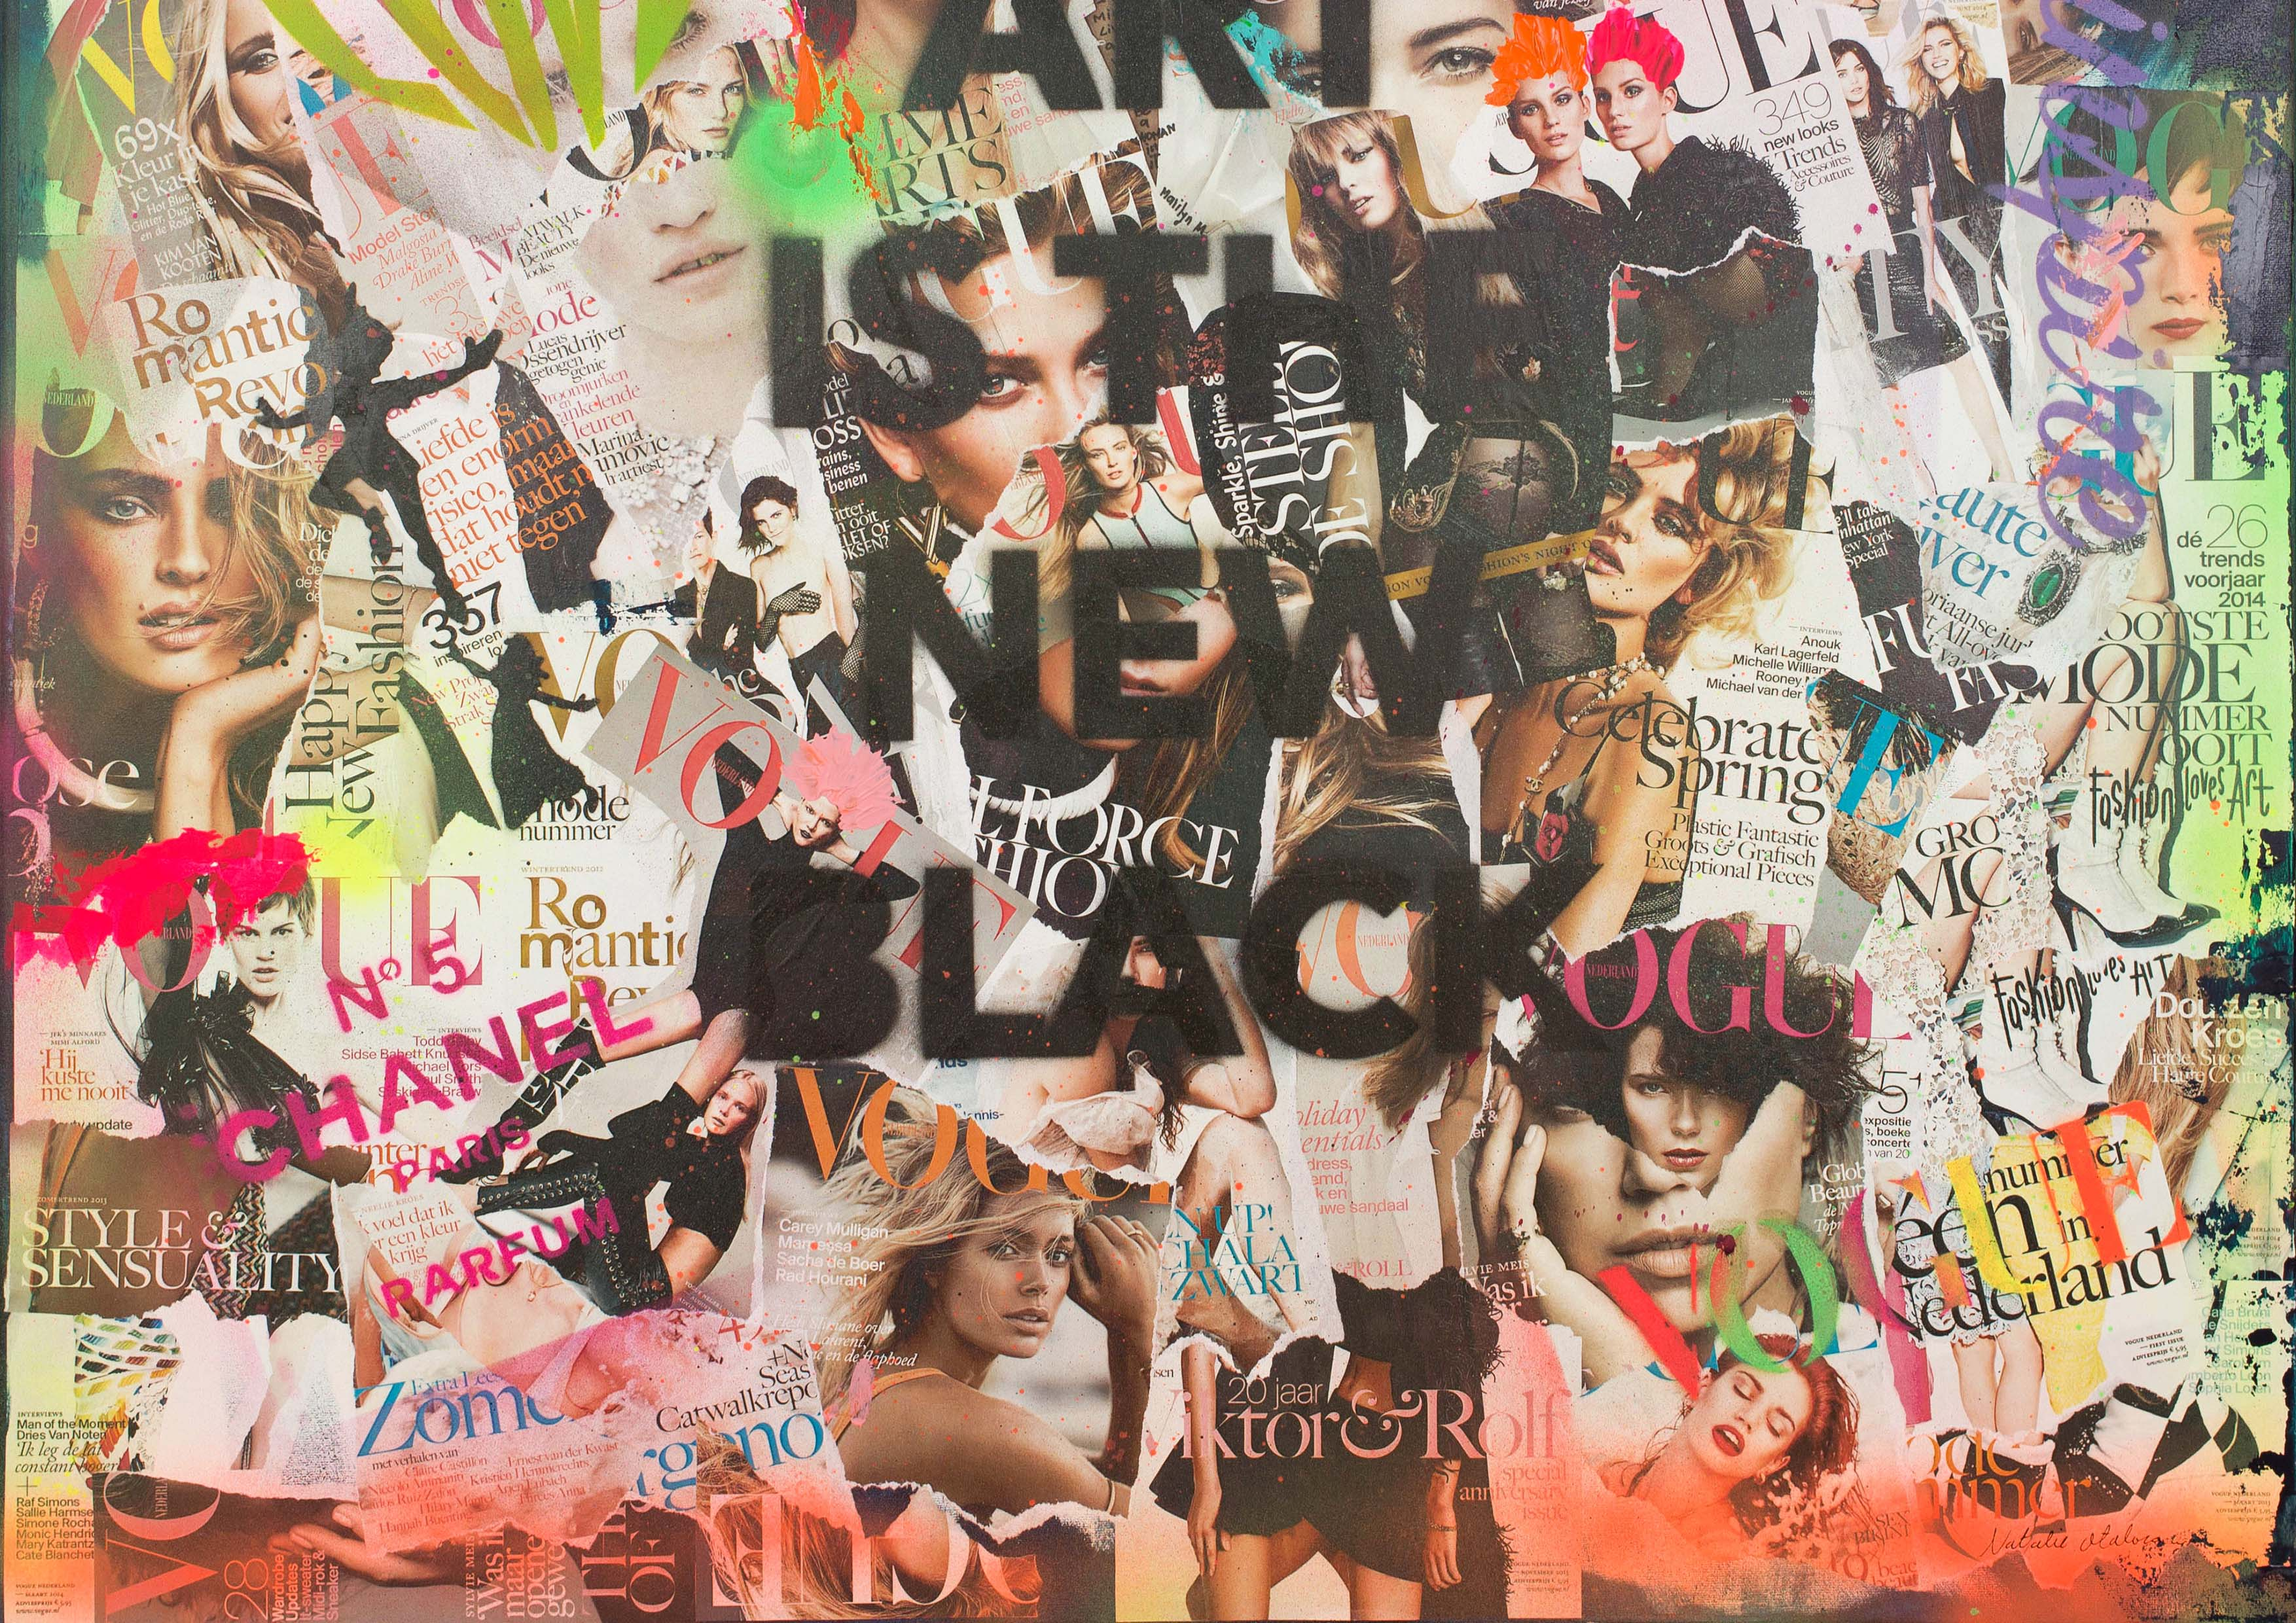 ART_MIXED-MEDIA_COLLAGE_FASHIONABLE_SOUP_CANVAS_DETAIL_1